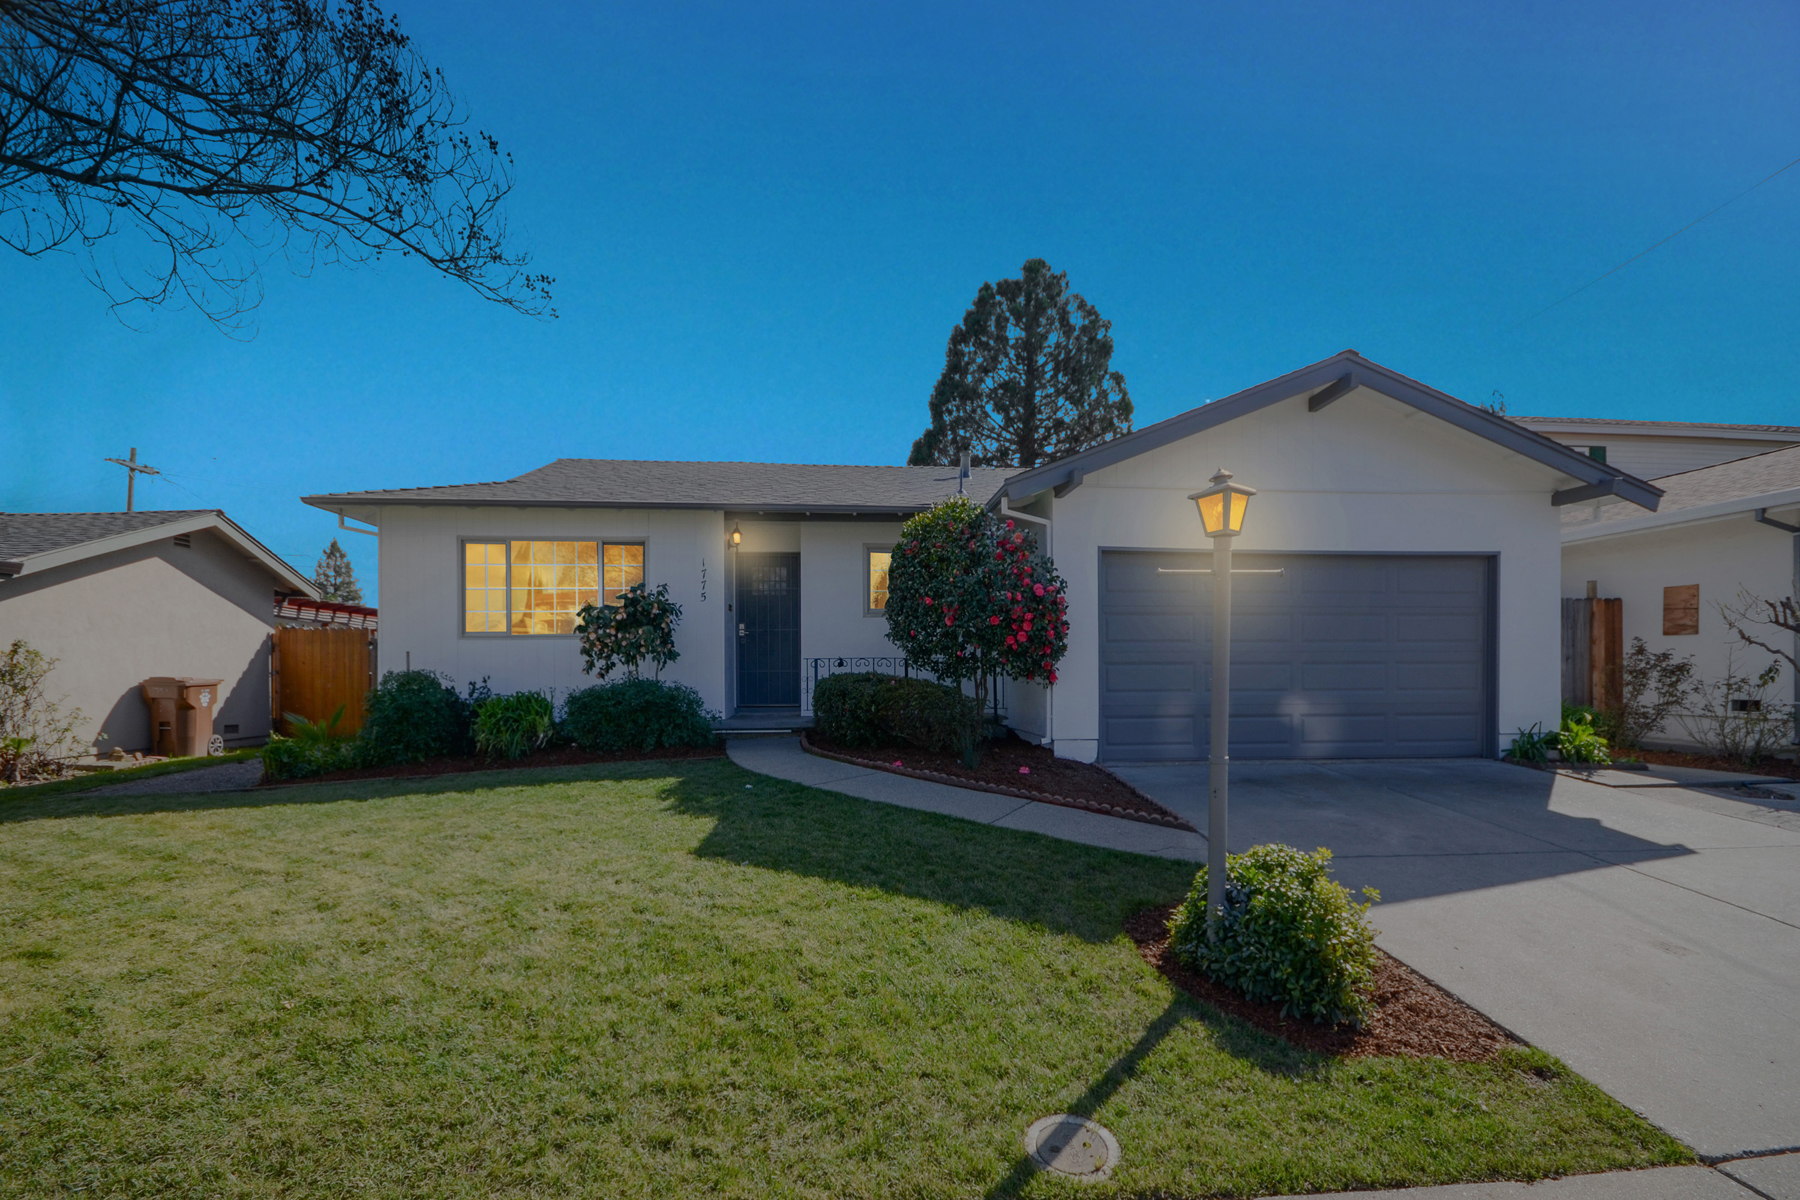 Single Family Home for Sale at Exquisitely Updated Ranch Style Home 1775 Trower Avenue Napa, California 94558 United States